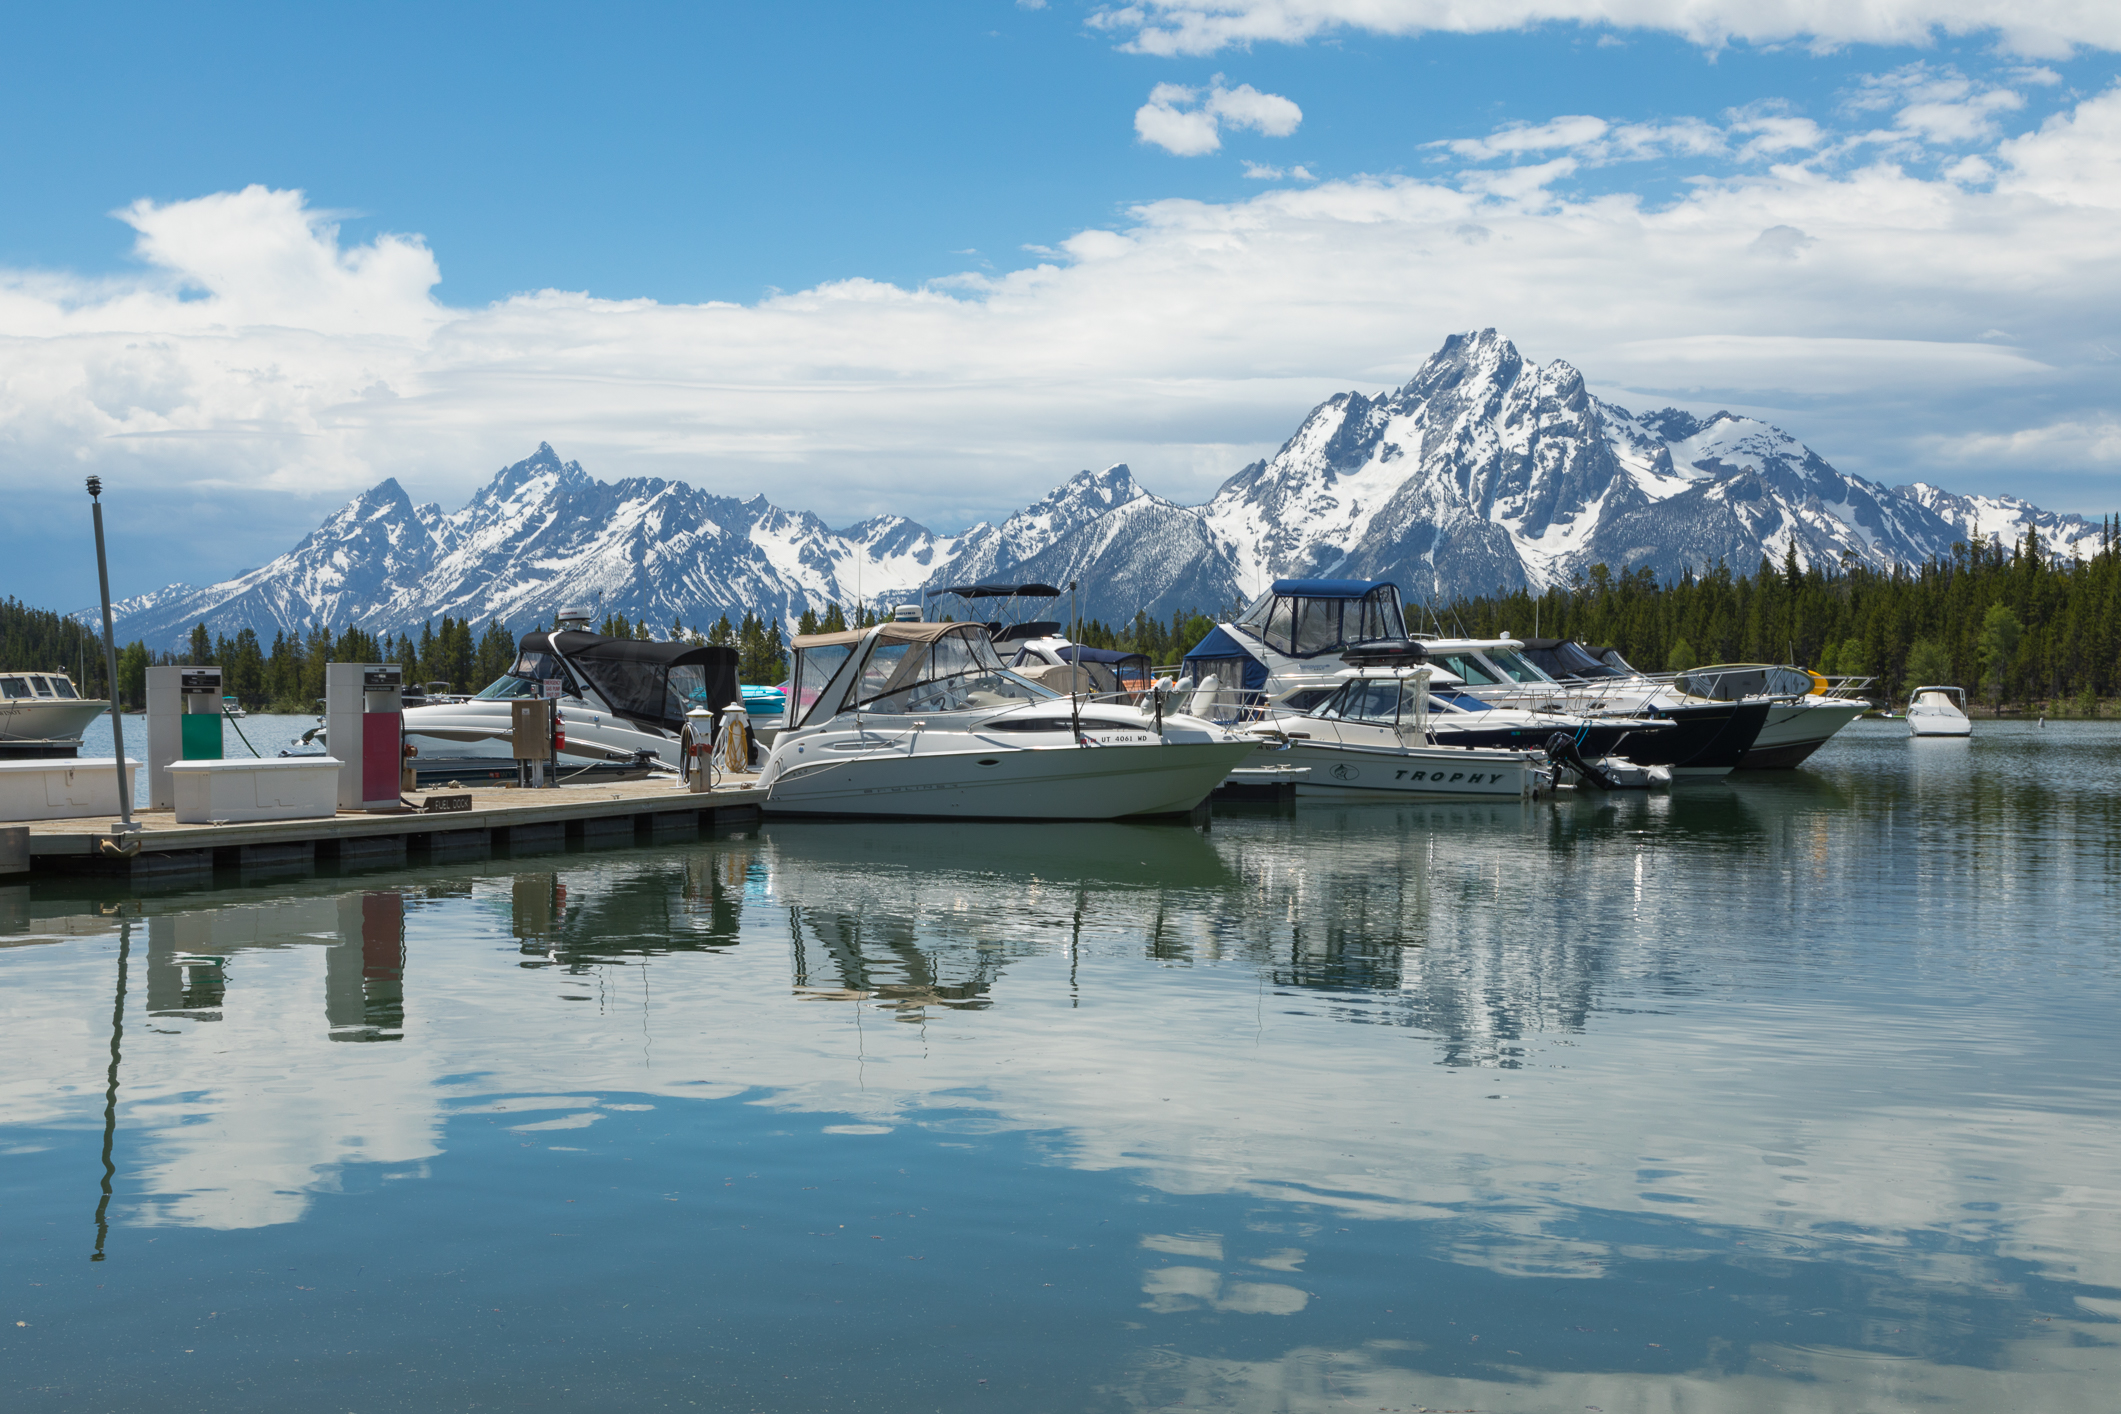 Colter Bay, Image # 2939